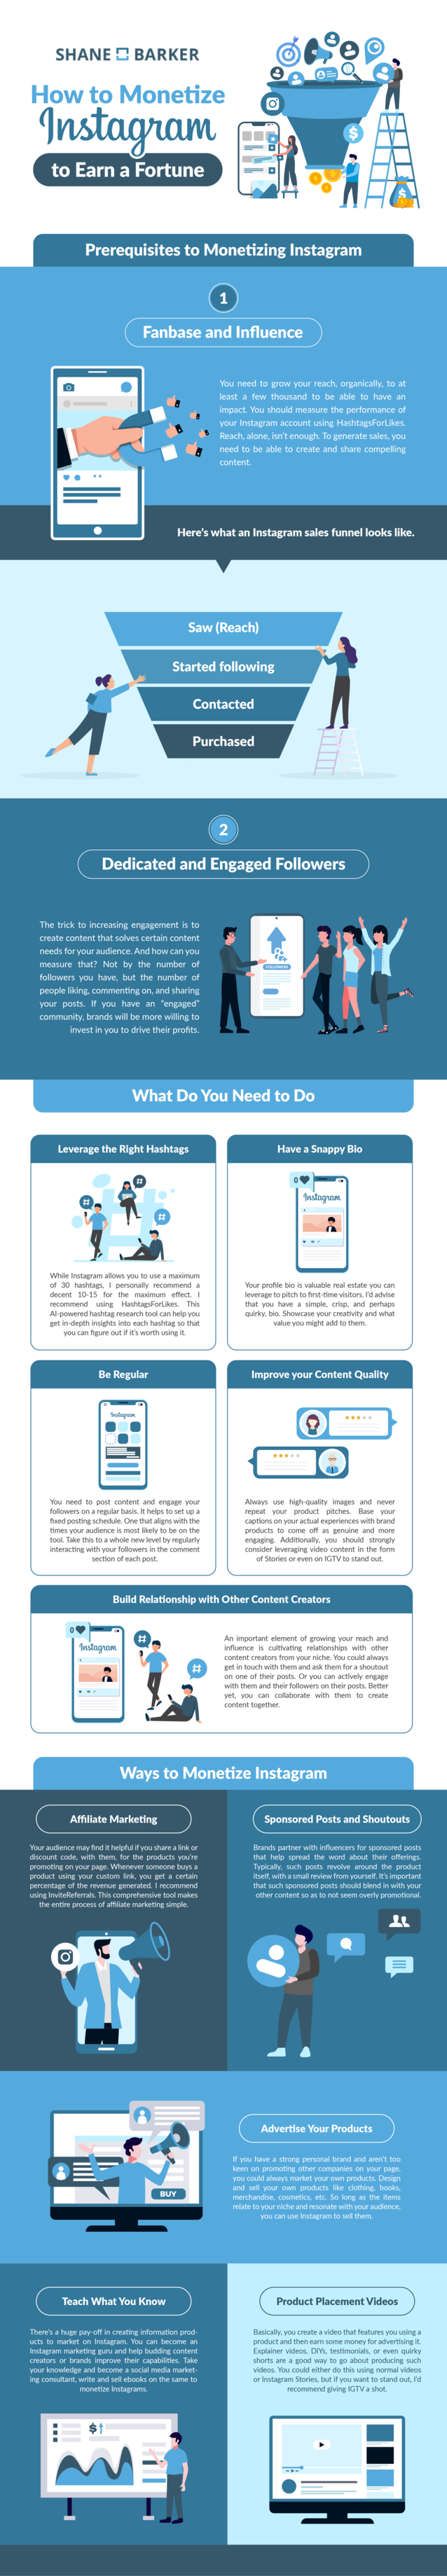 How-to-Monetize-Instagram-to-Earn-a-Fortune-infographic